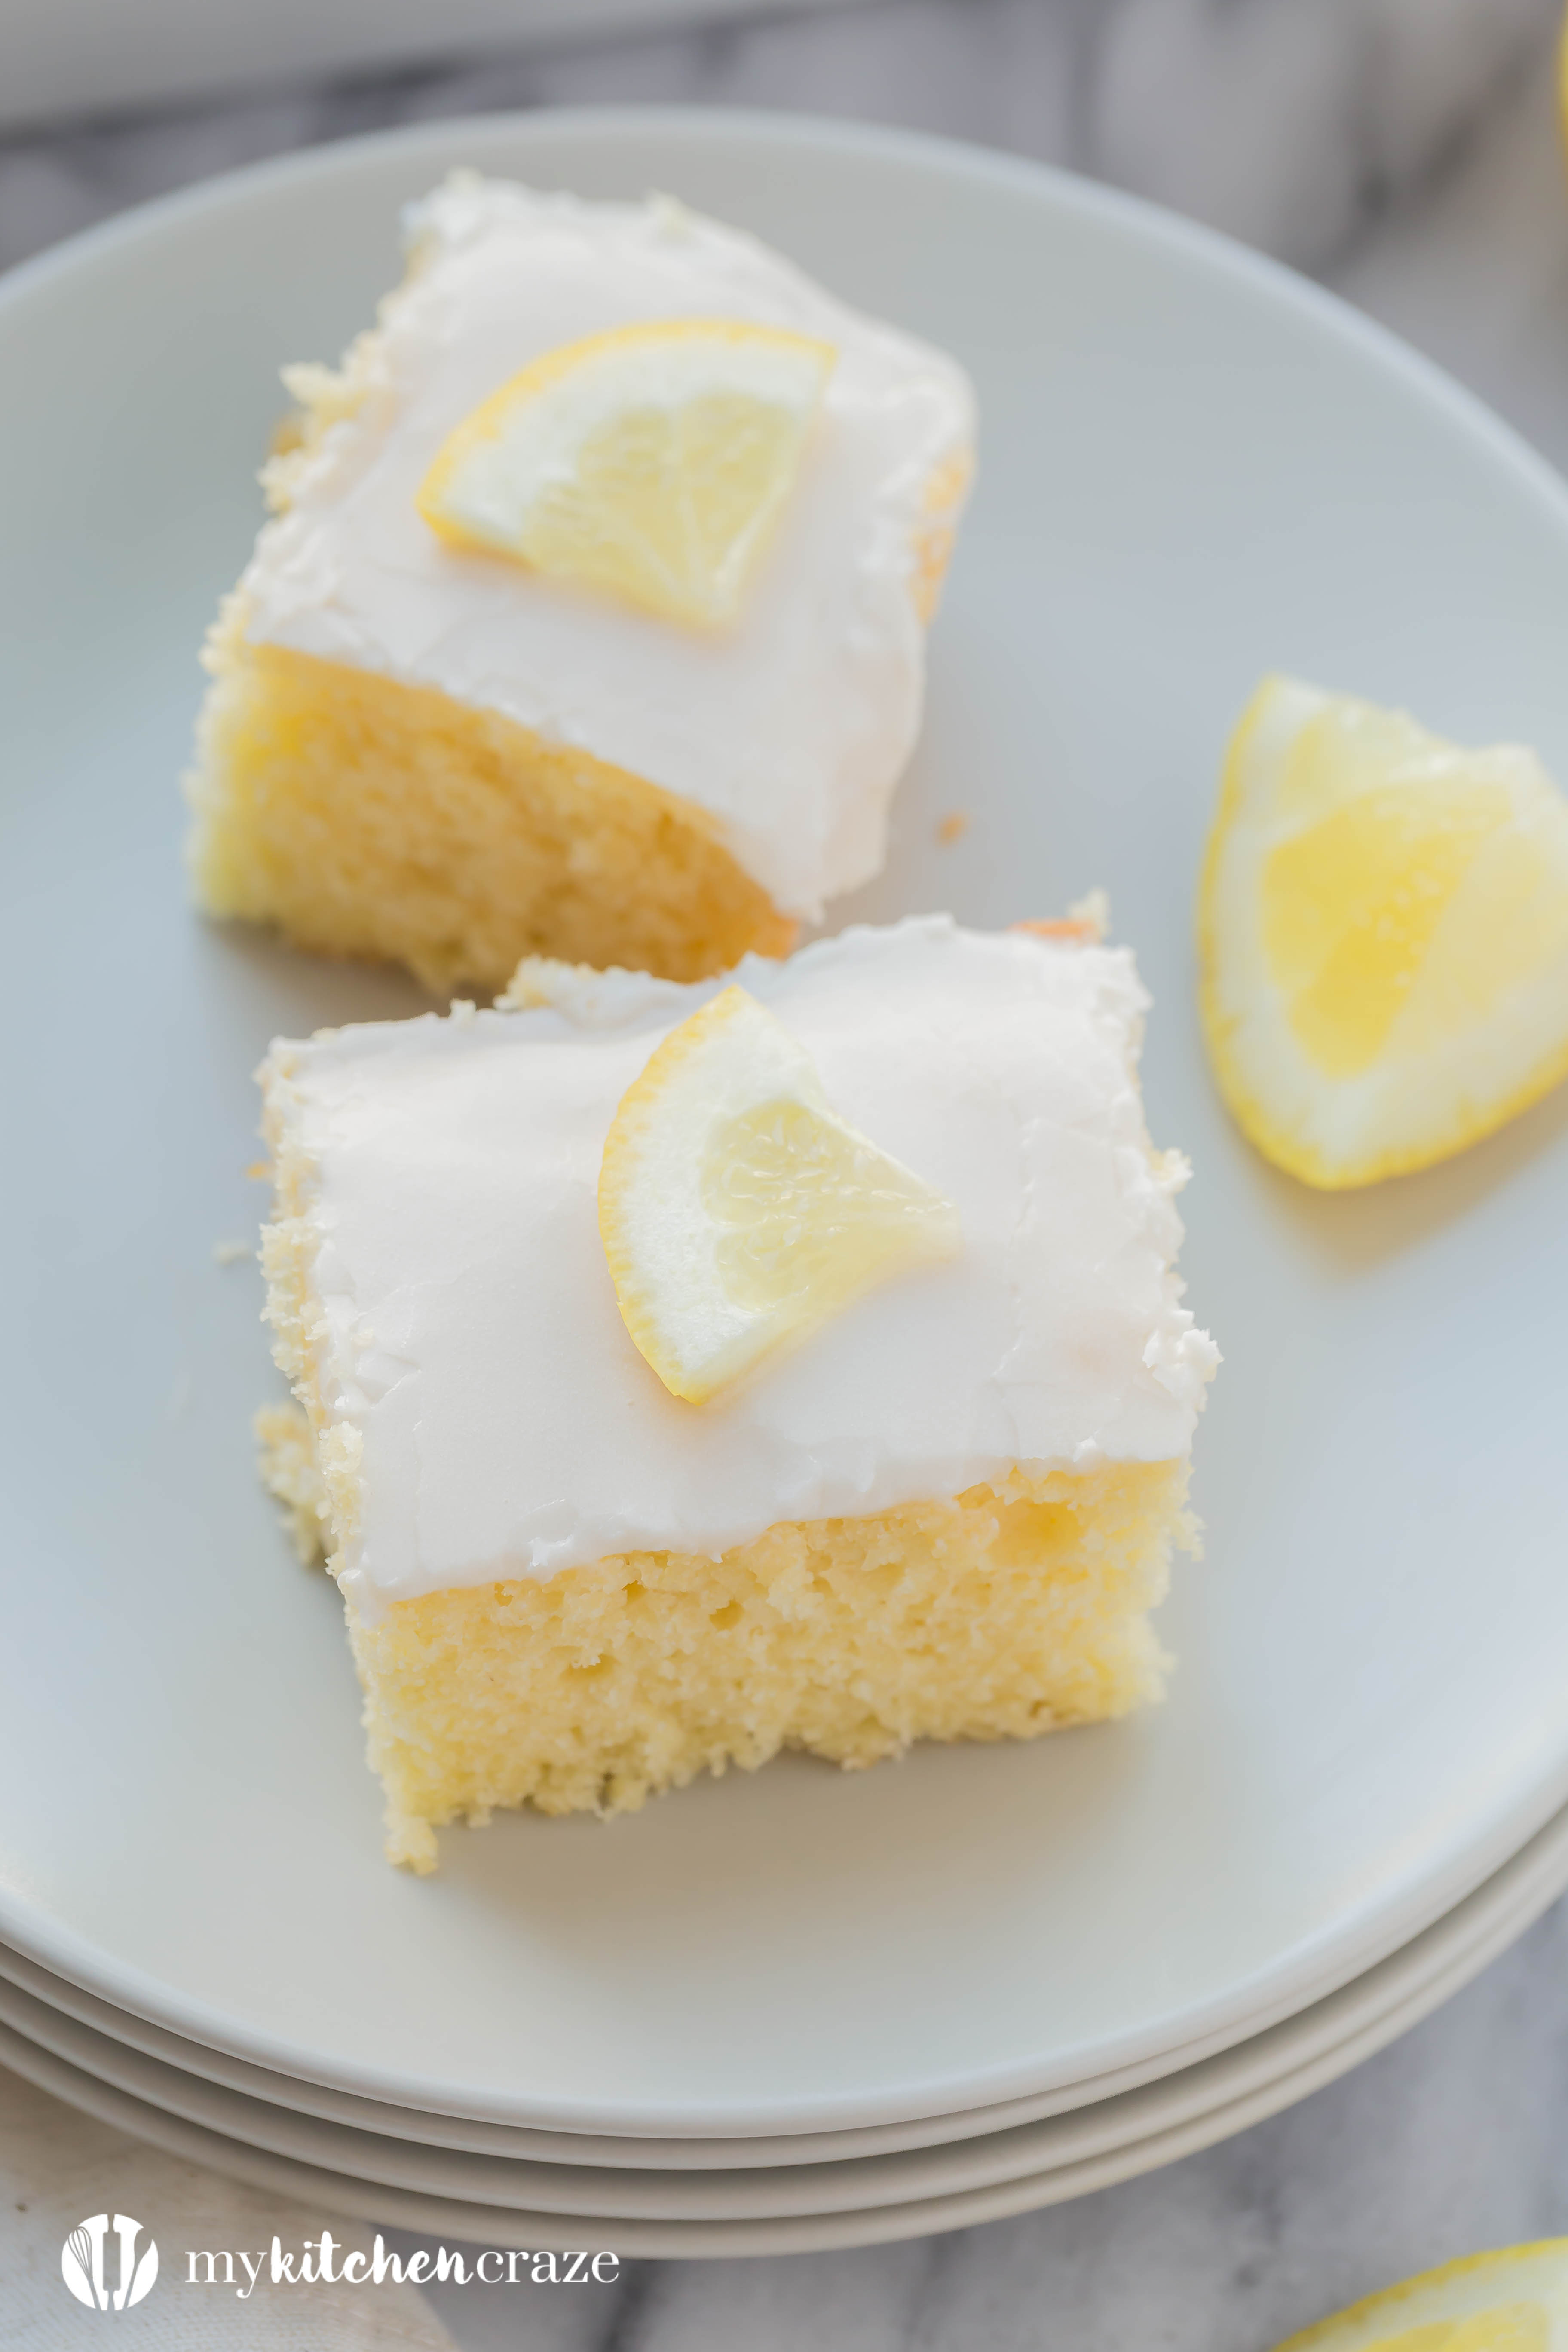 Lemon Velvet Squares are moist and packed with lemon flavor. Topped with a simple lemon glaze, these are one dessert you won't want to pass up. Includes a how to make video too.